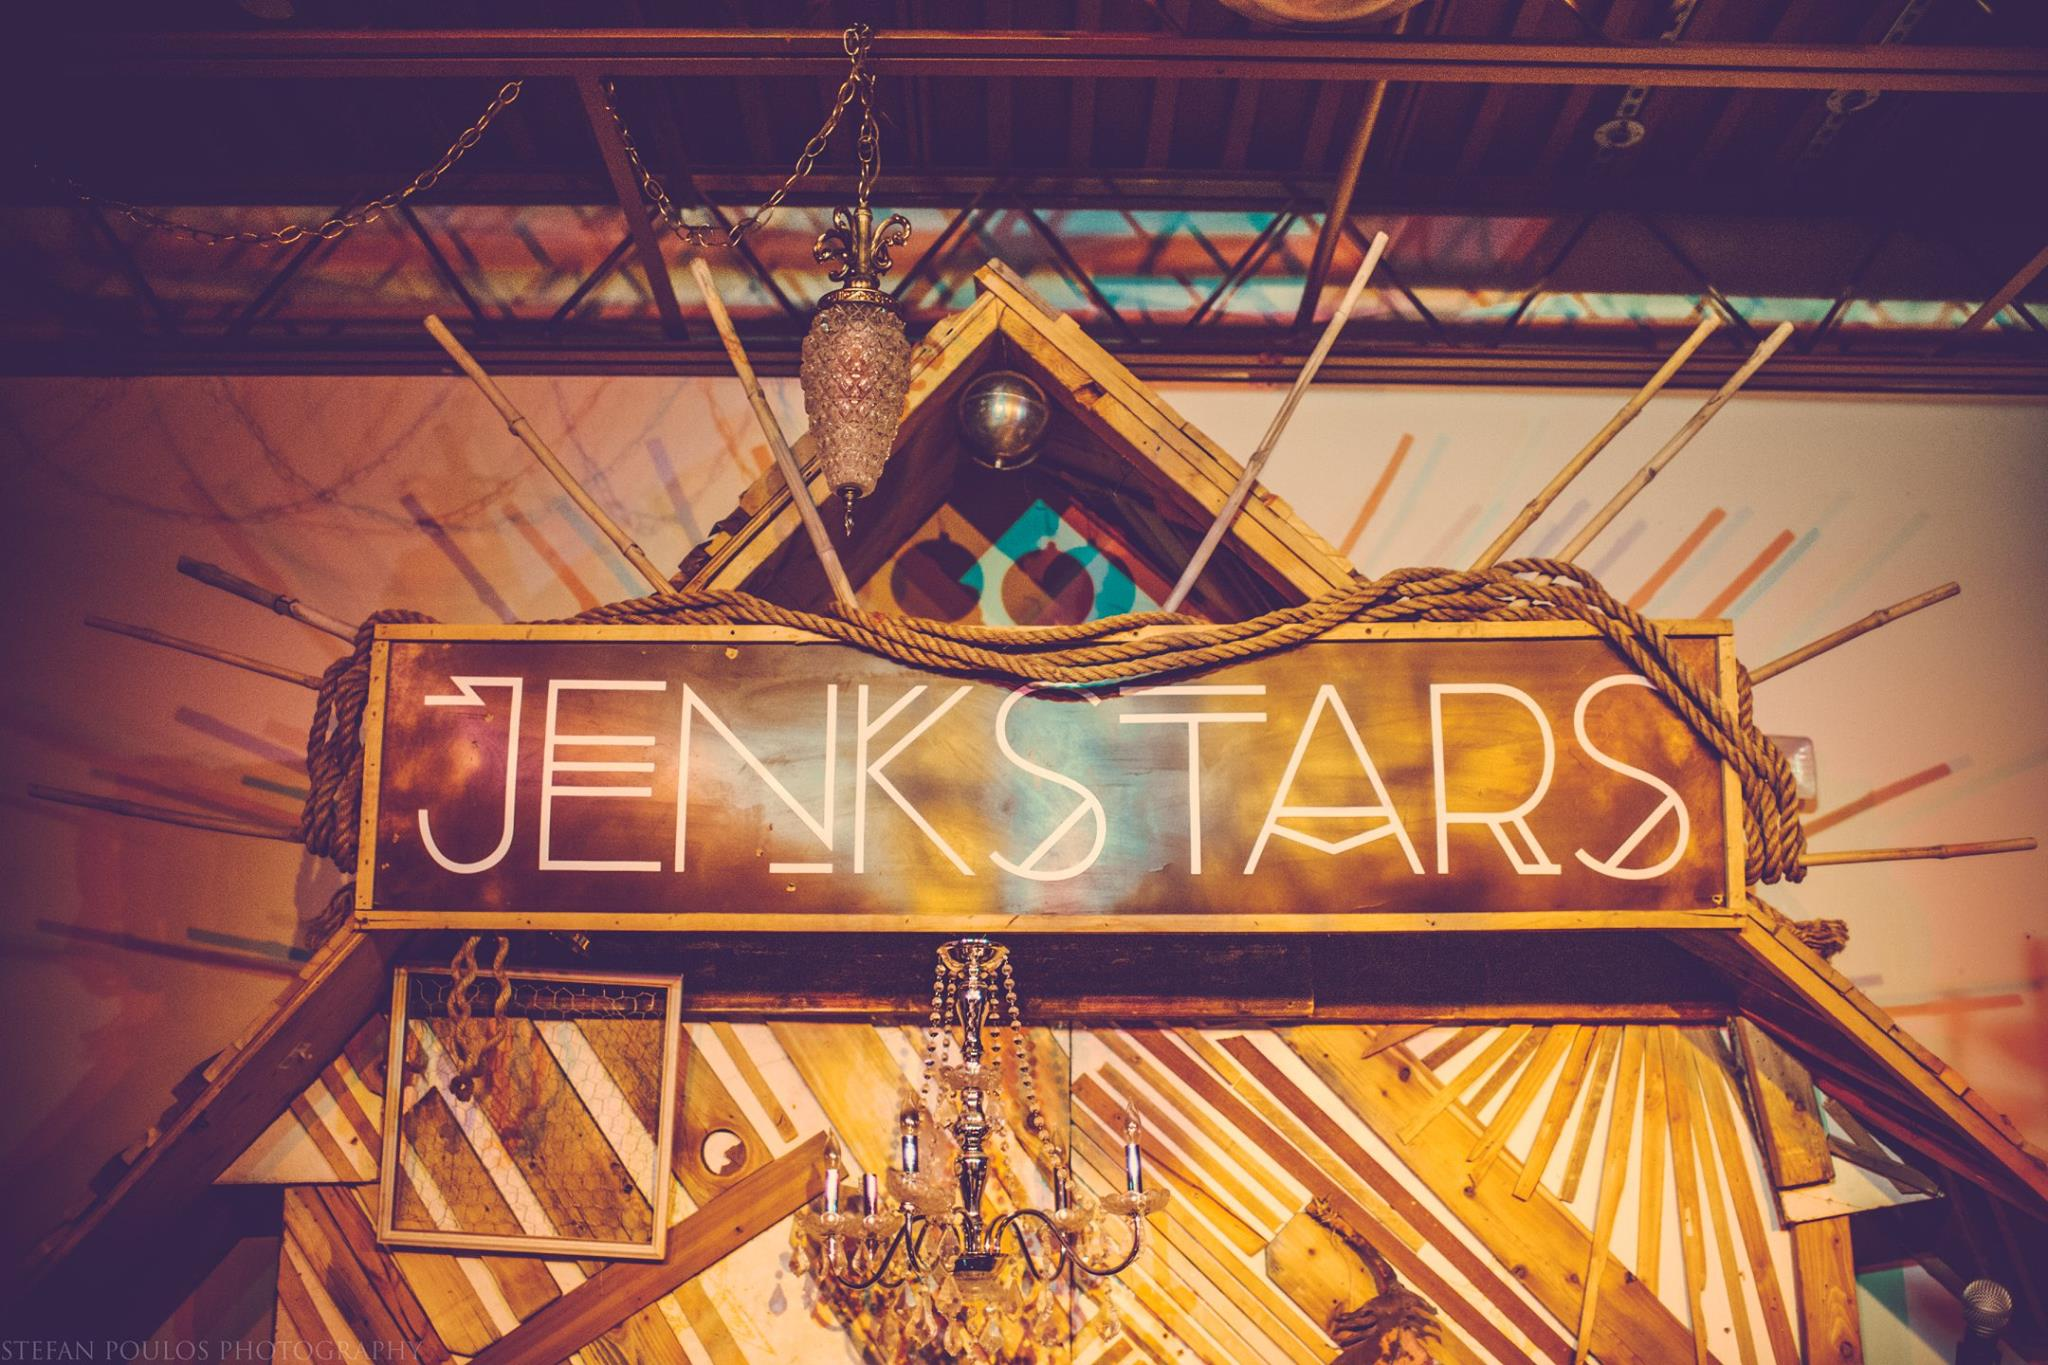 Talent Show - We are all JenkStars, come and show us what you've got.